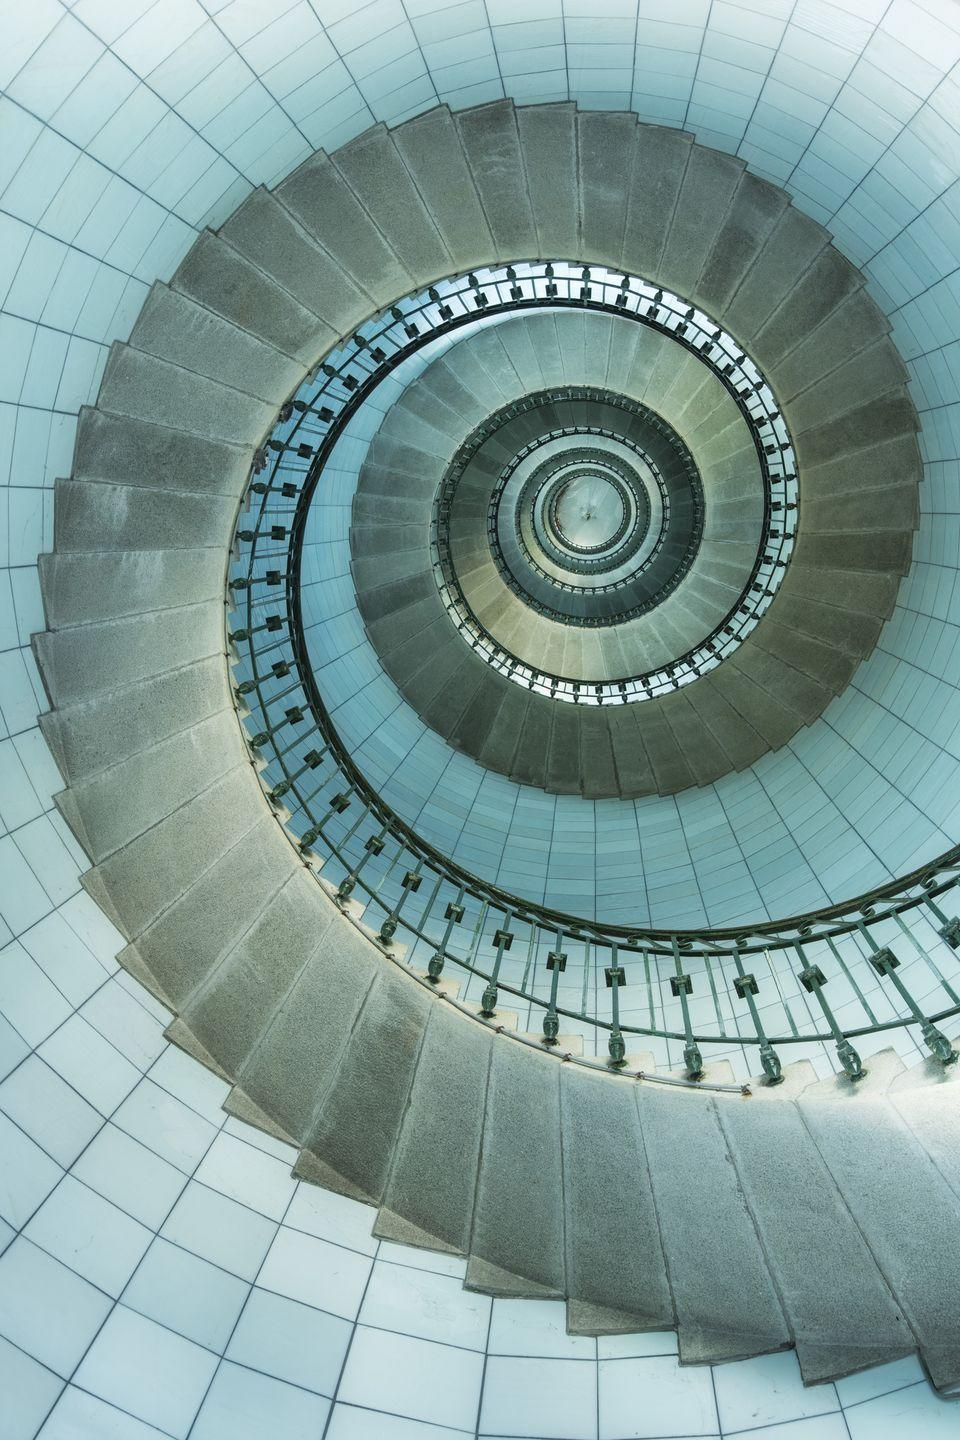 <p>This perfect spiral is found off the coast of Brittany, and it is the tallest traditional lighthouse in the world. To see these beautiful blue walls in person you'd have to climb up 375 steps. </p>